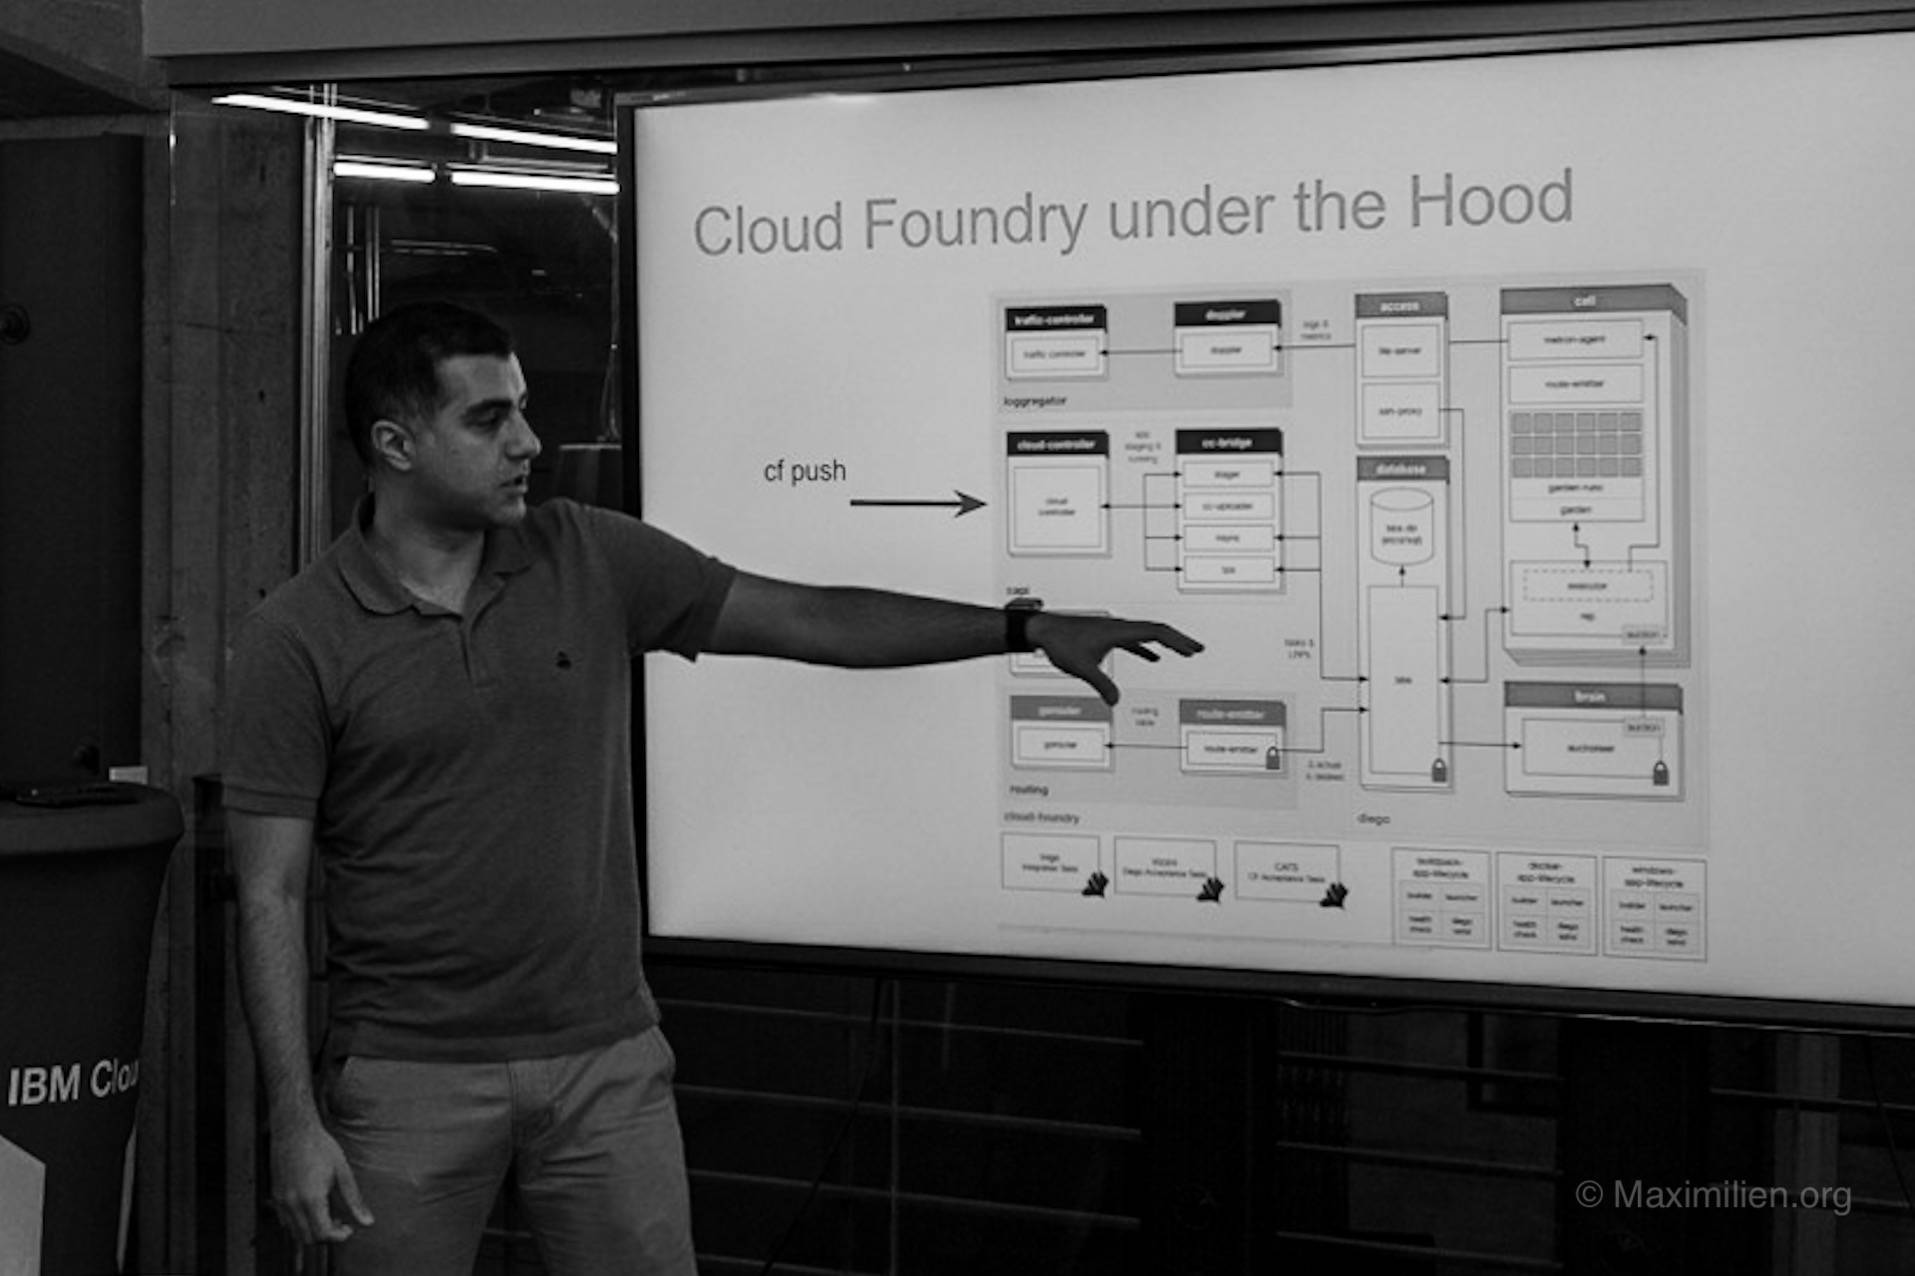 Cloud Foundry under the hood